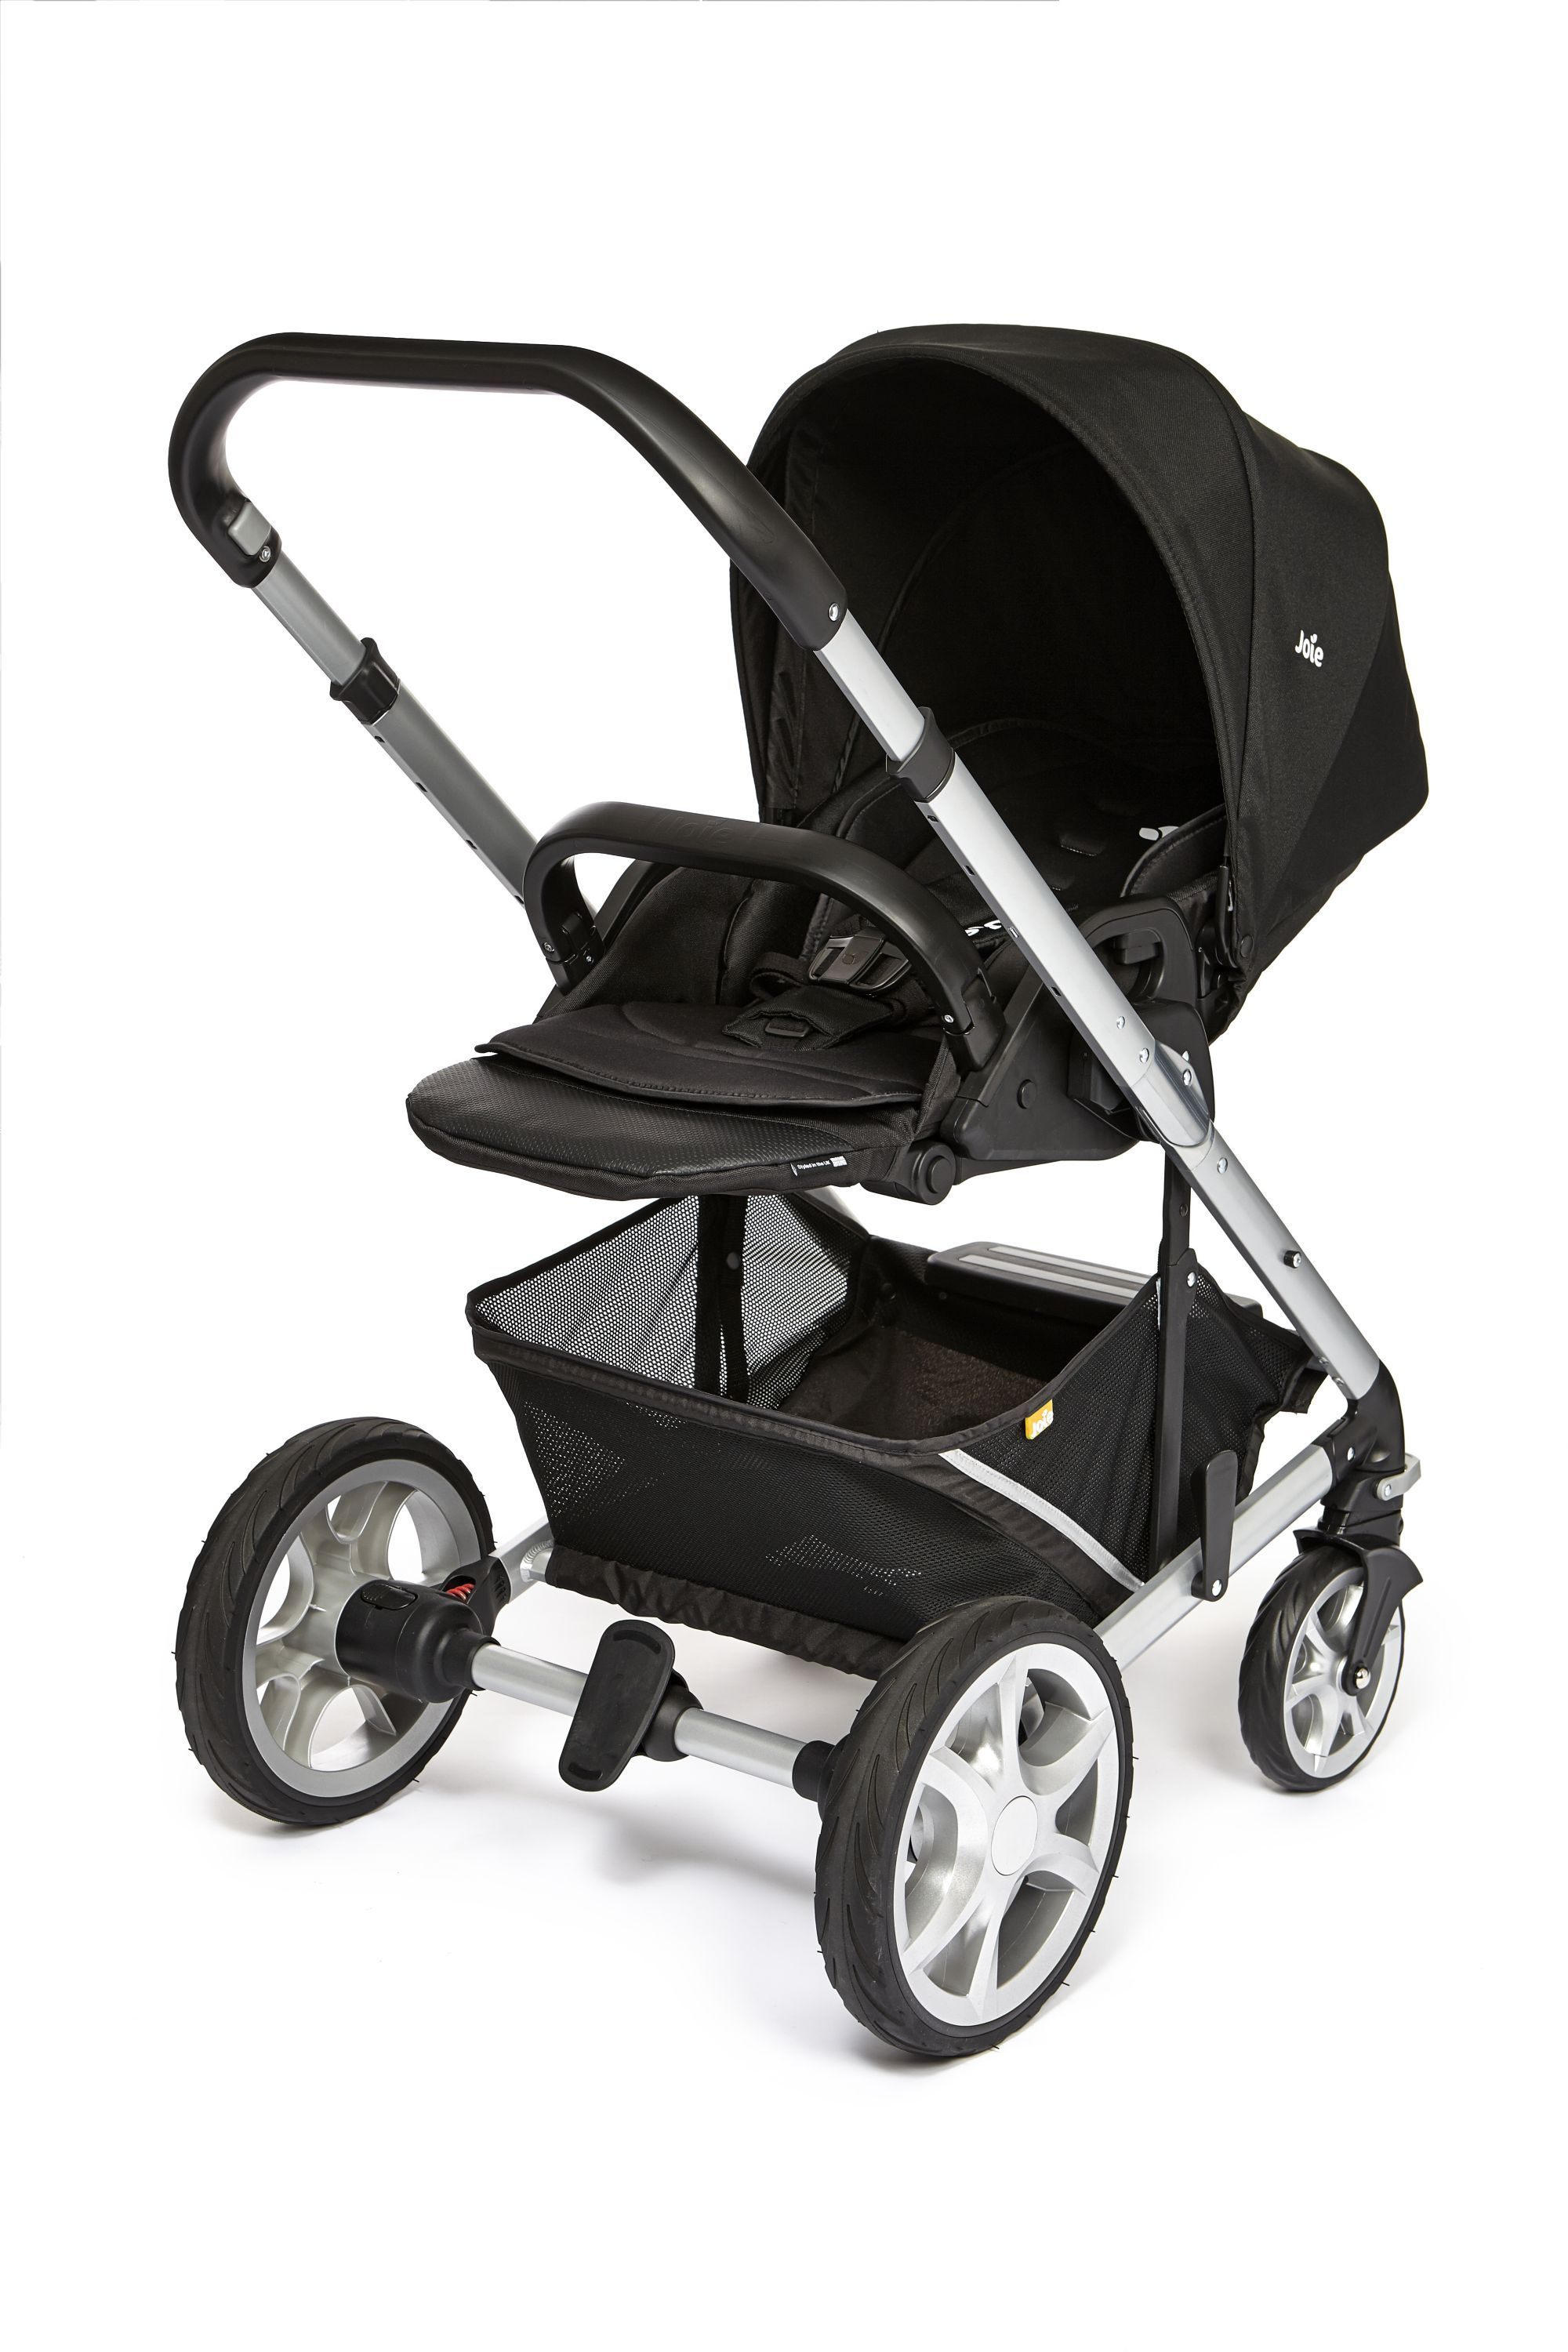 Joie Chrome Plus Colour Pack Black Carbon Pushchair